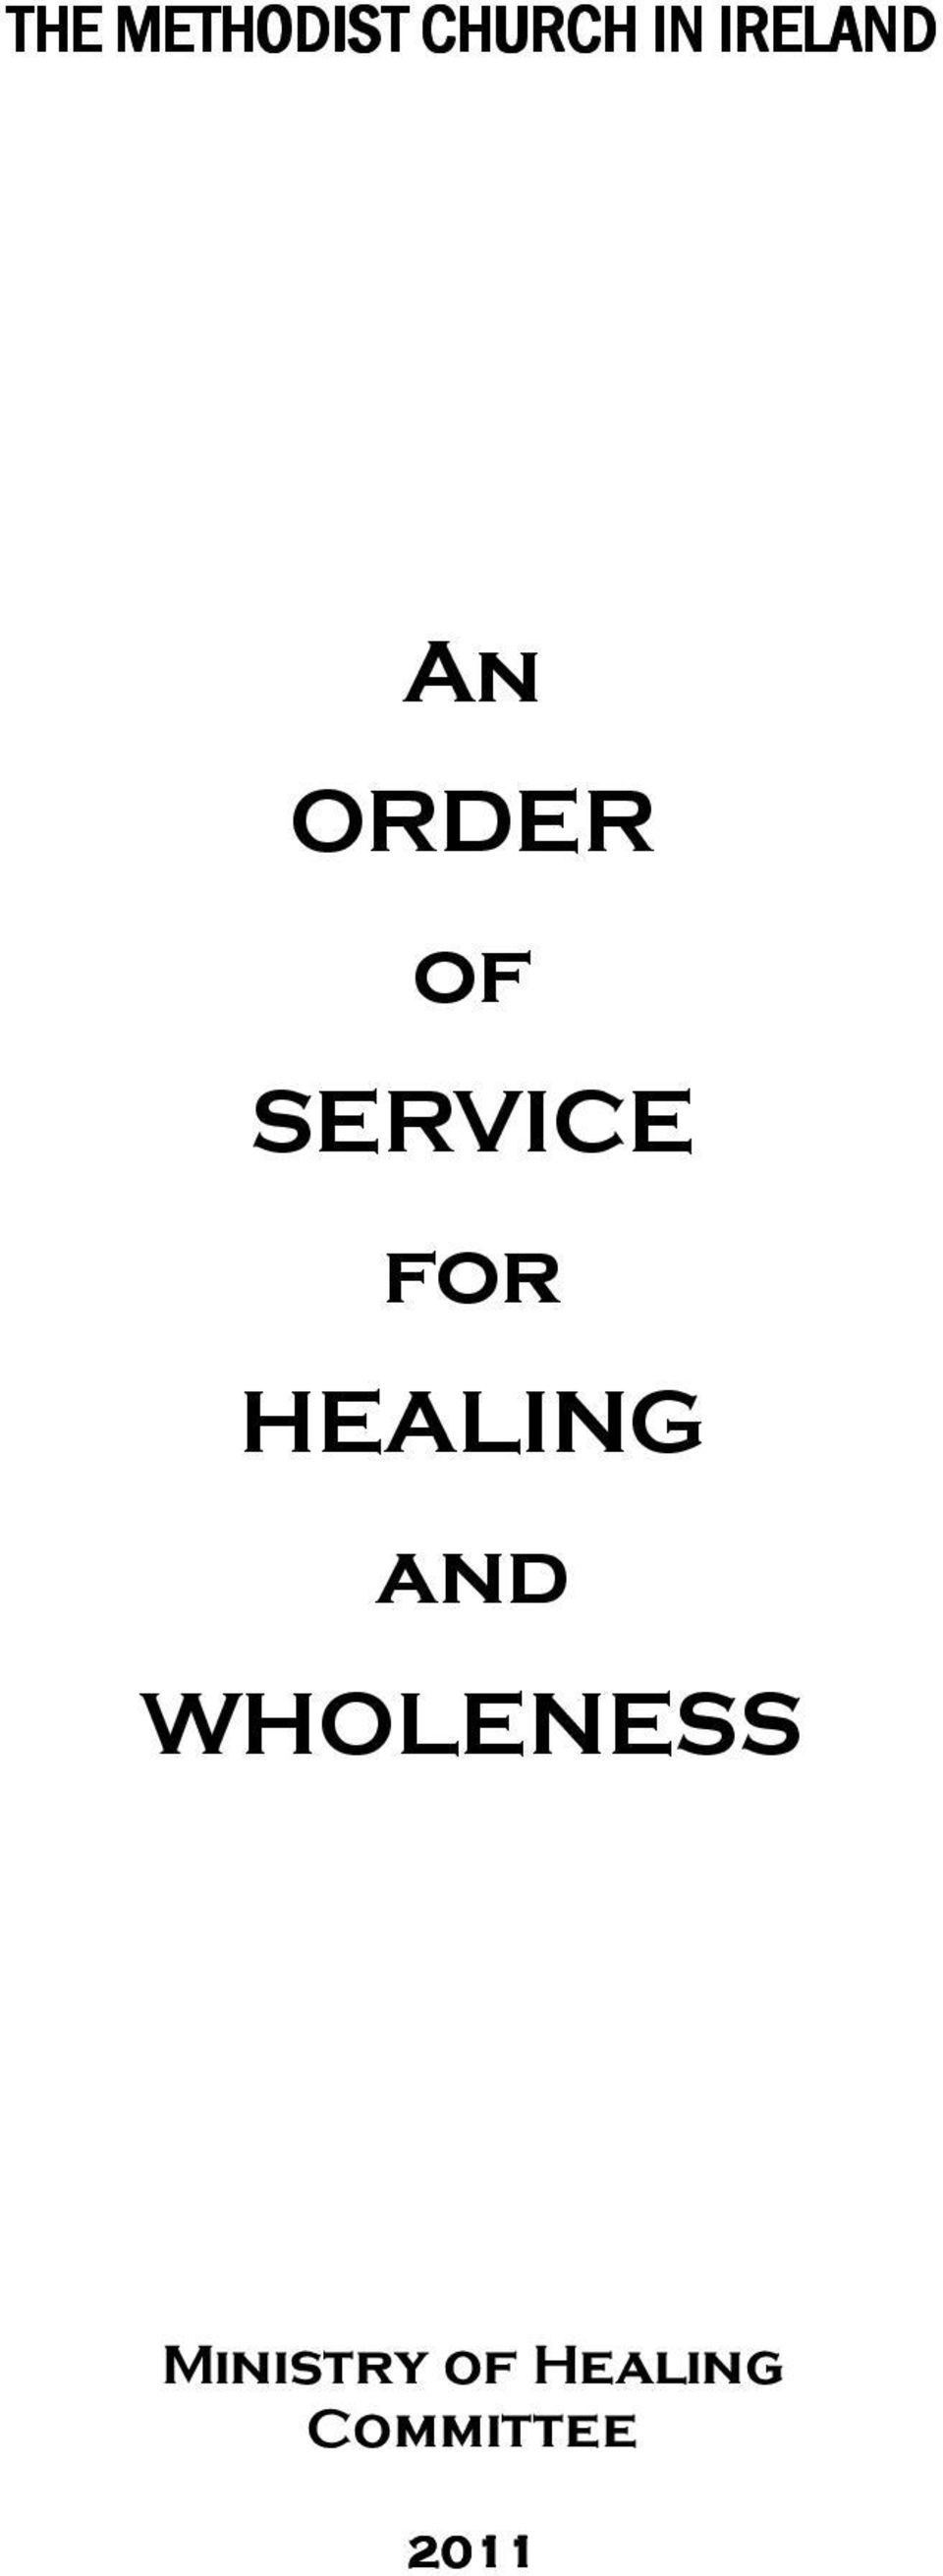 for HEALING and WHOLENESS